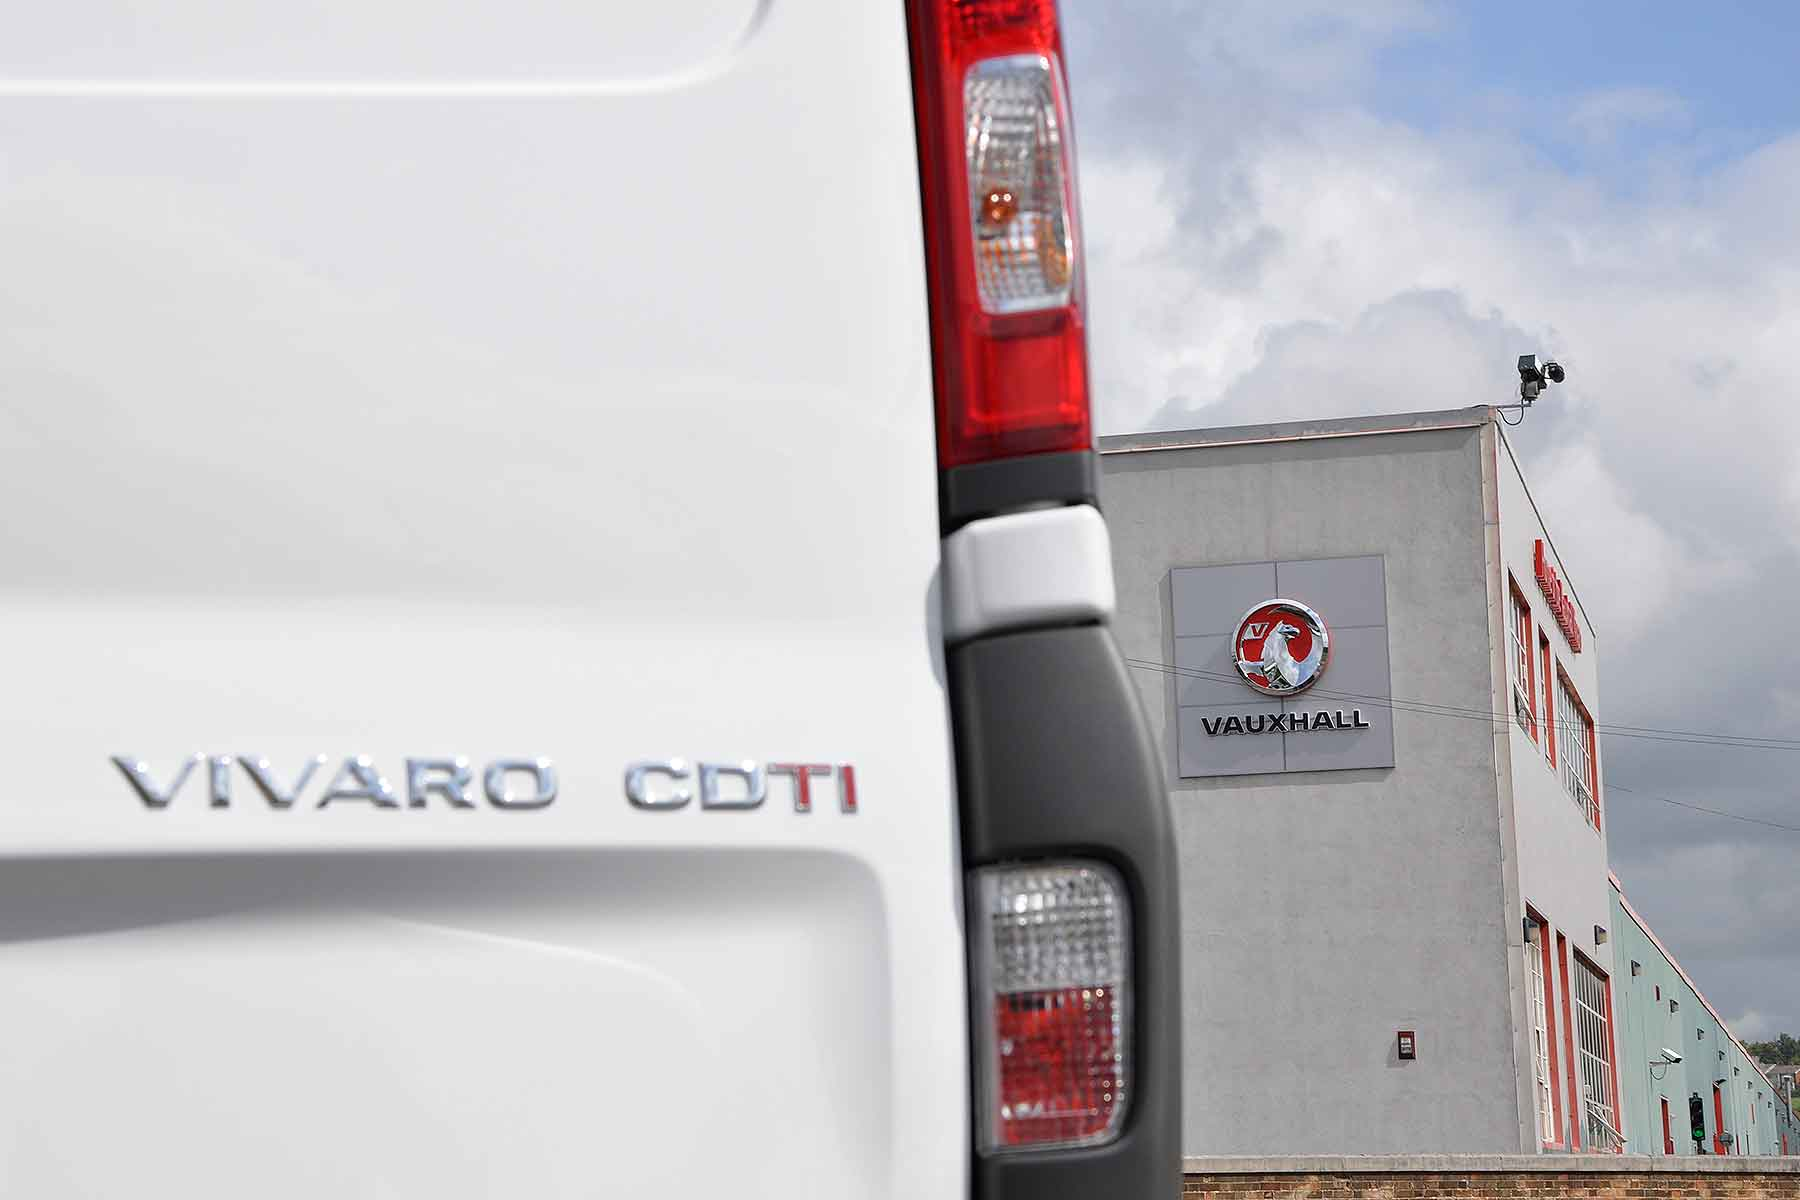 The Vauxhall Vivaro van is built in Luton